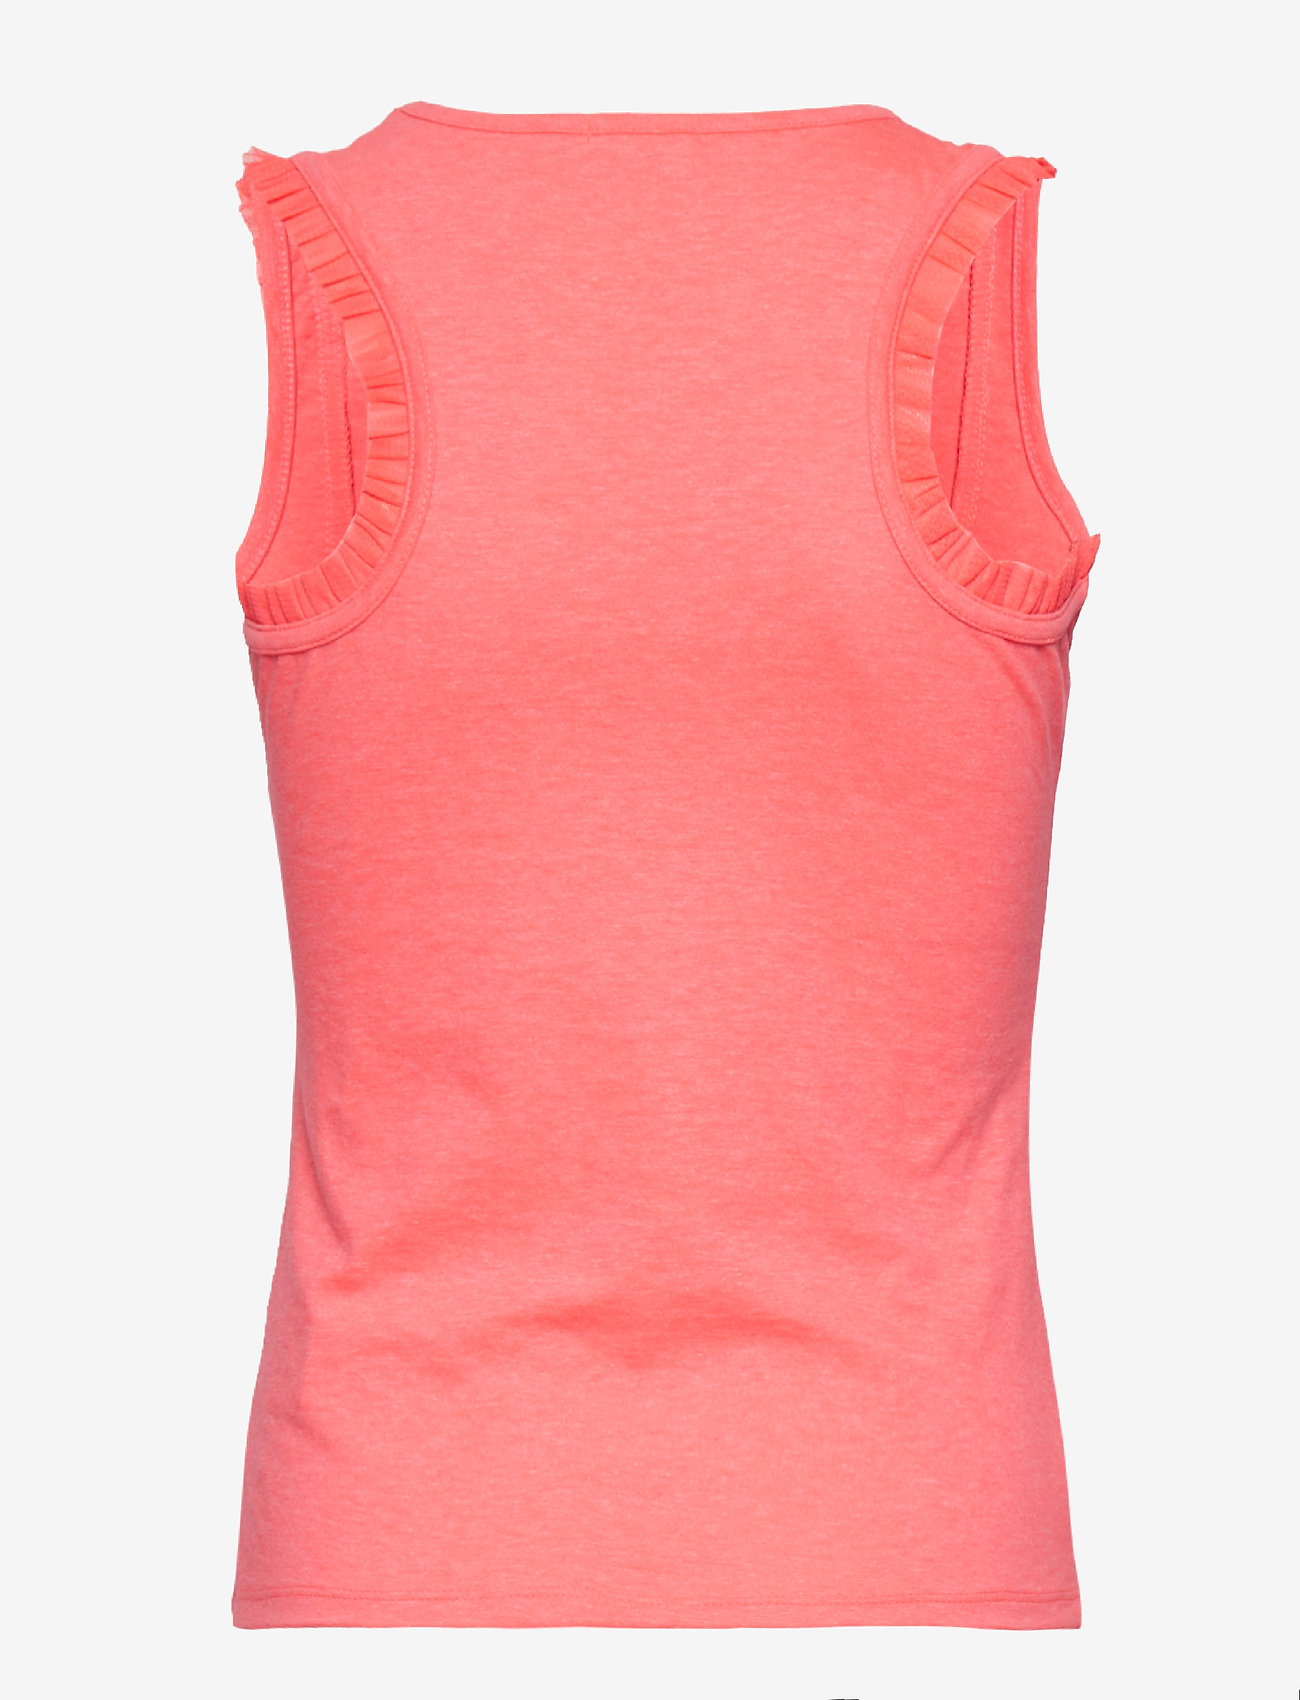 Billieblush - TANK TOP - sleeveless - fuschia